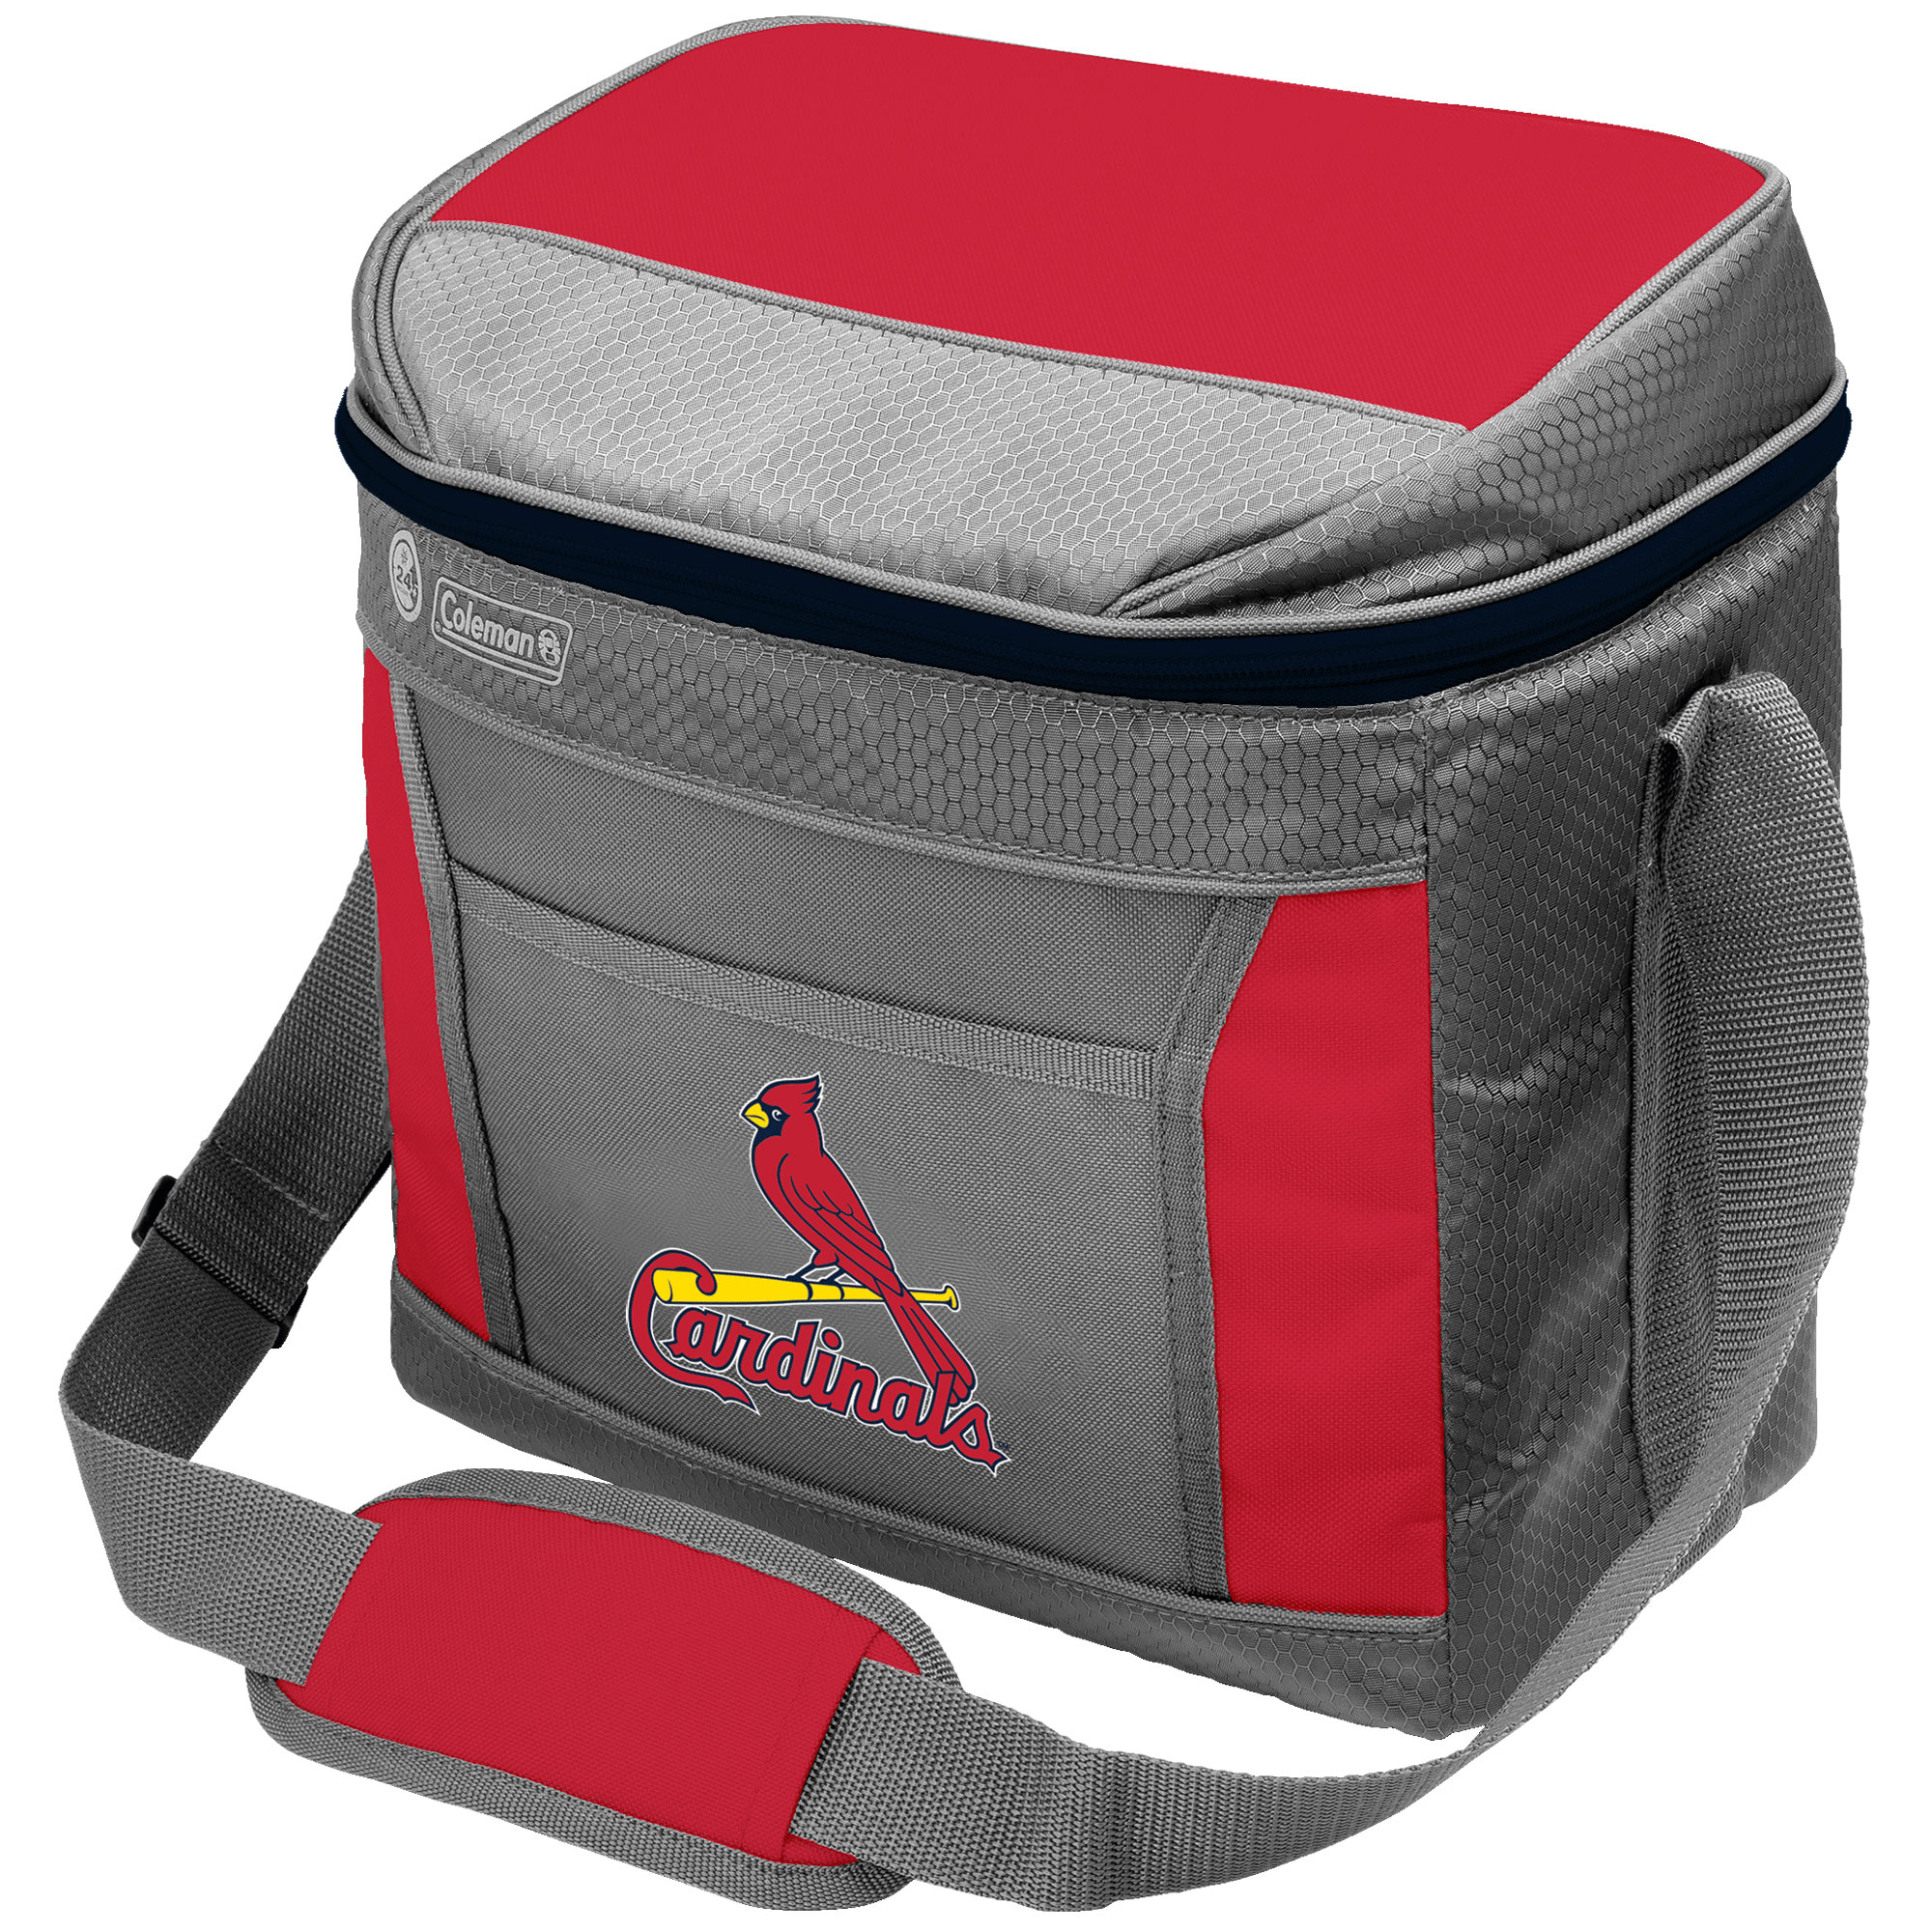 St. Louis Cardinals Coleman 16-Can 24-Hour Soft-Sided Cooler - No Size